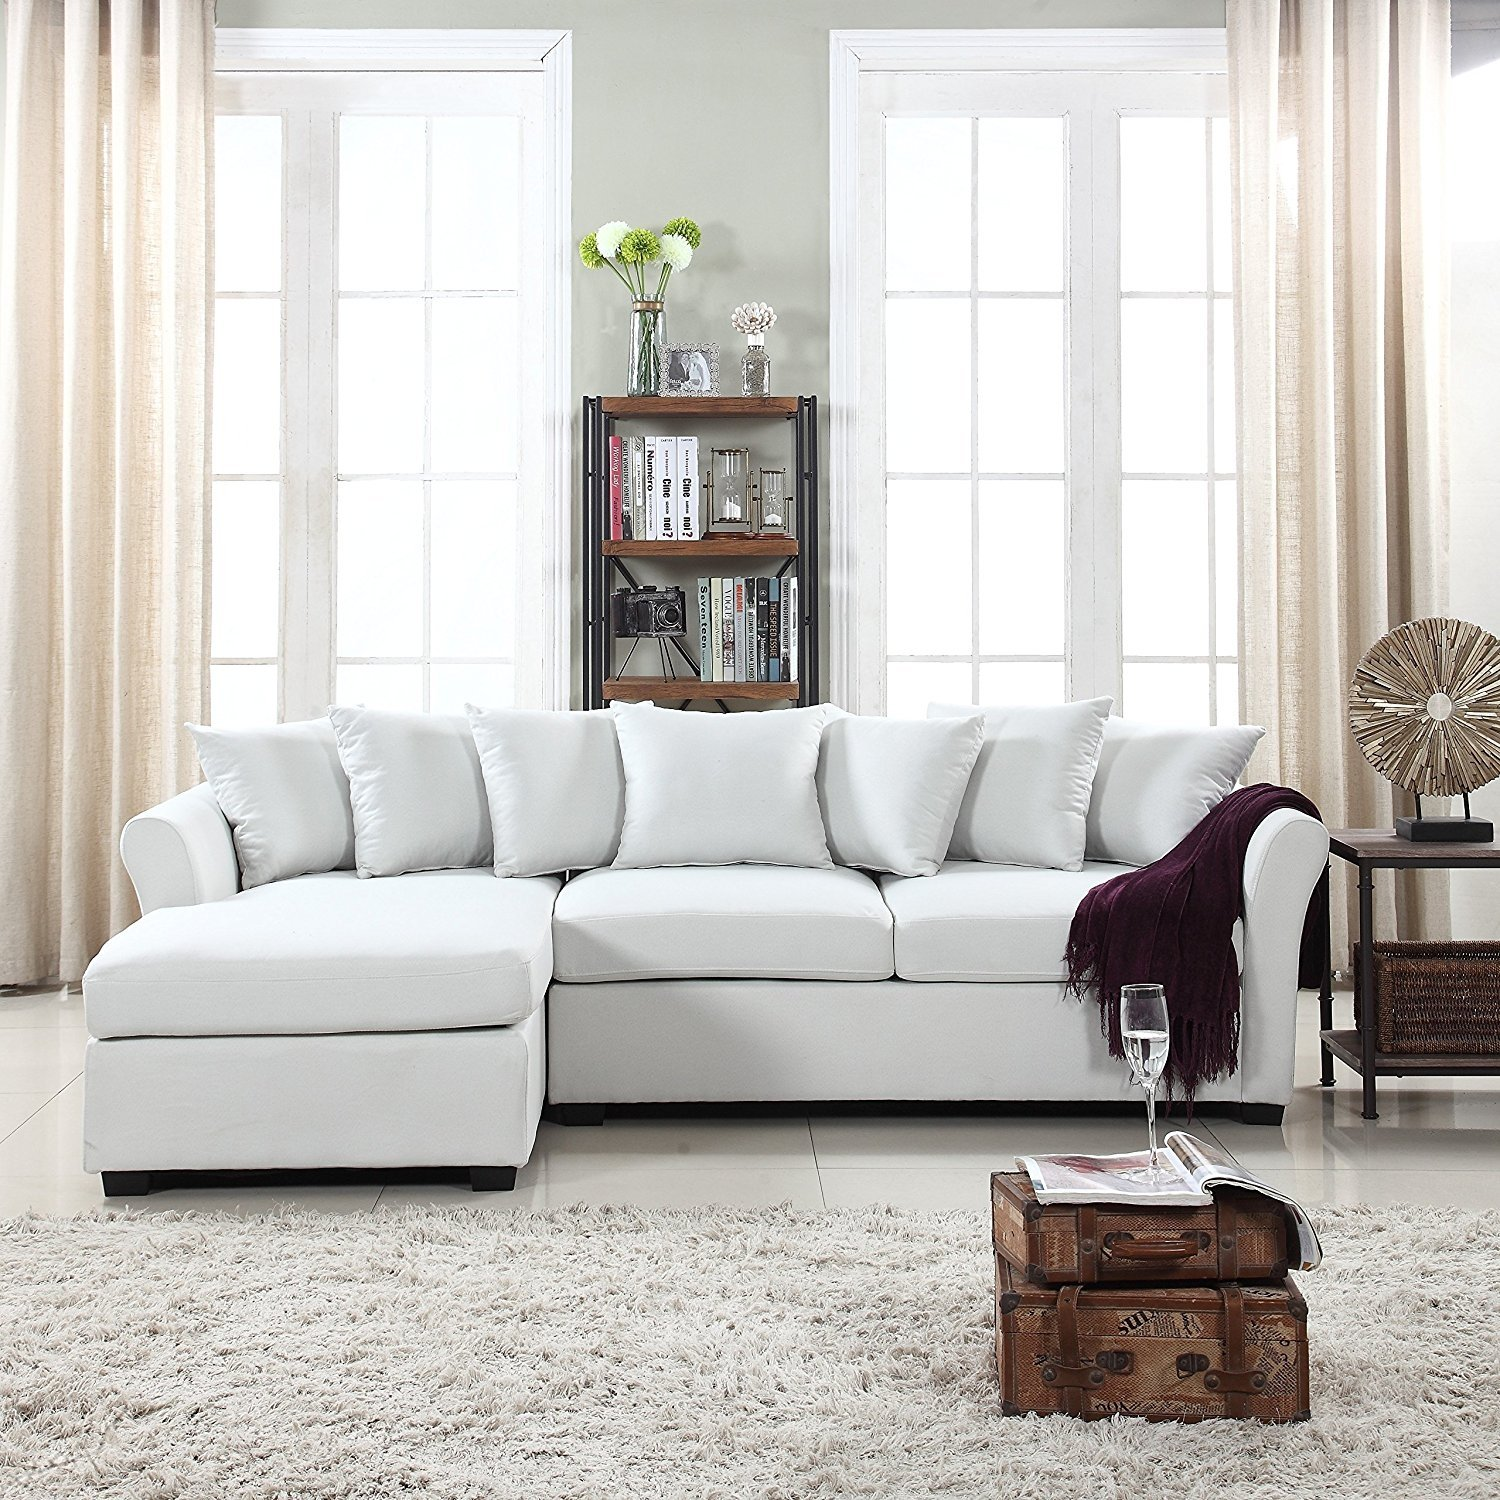 Modern Large Linen Fabric Sectional Sofa L Shape Couch